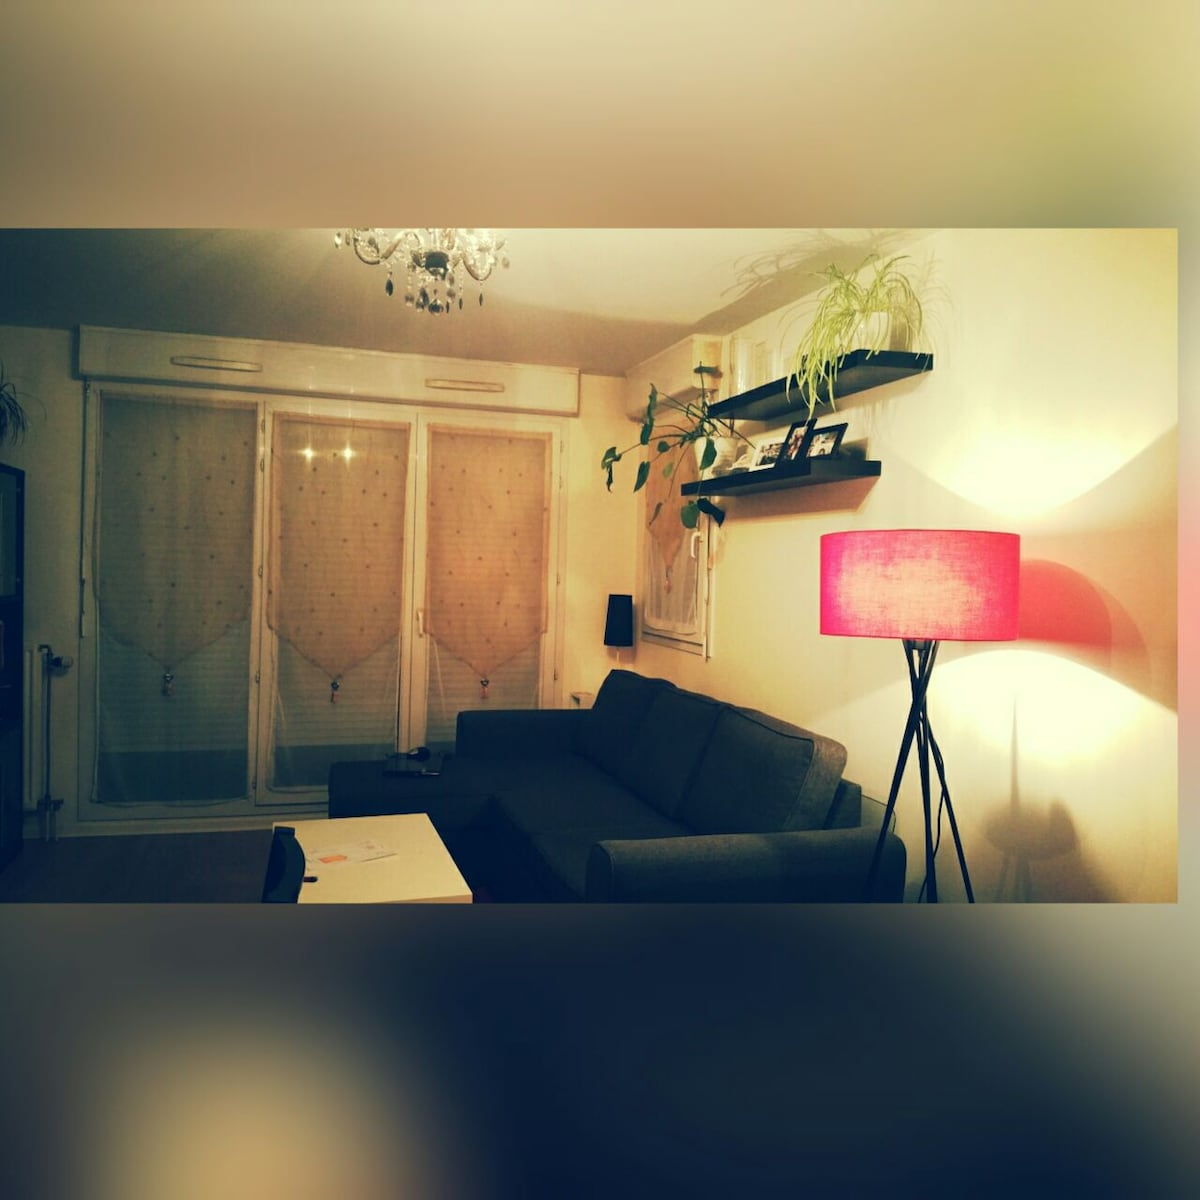 private room-twin beds-metro paris